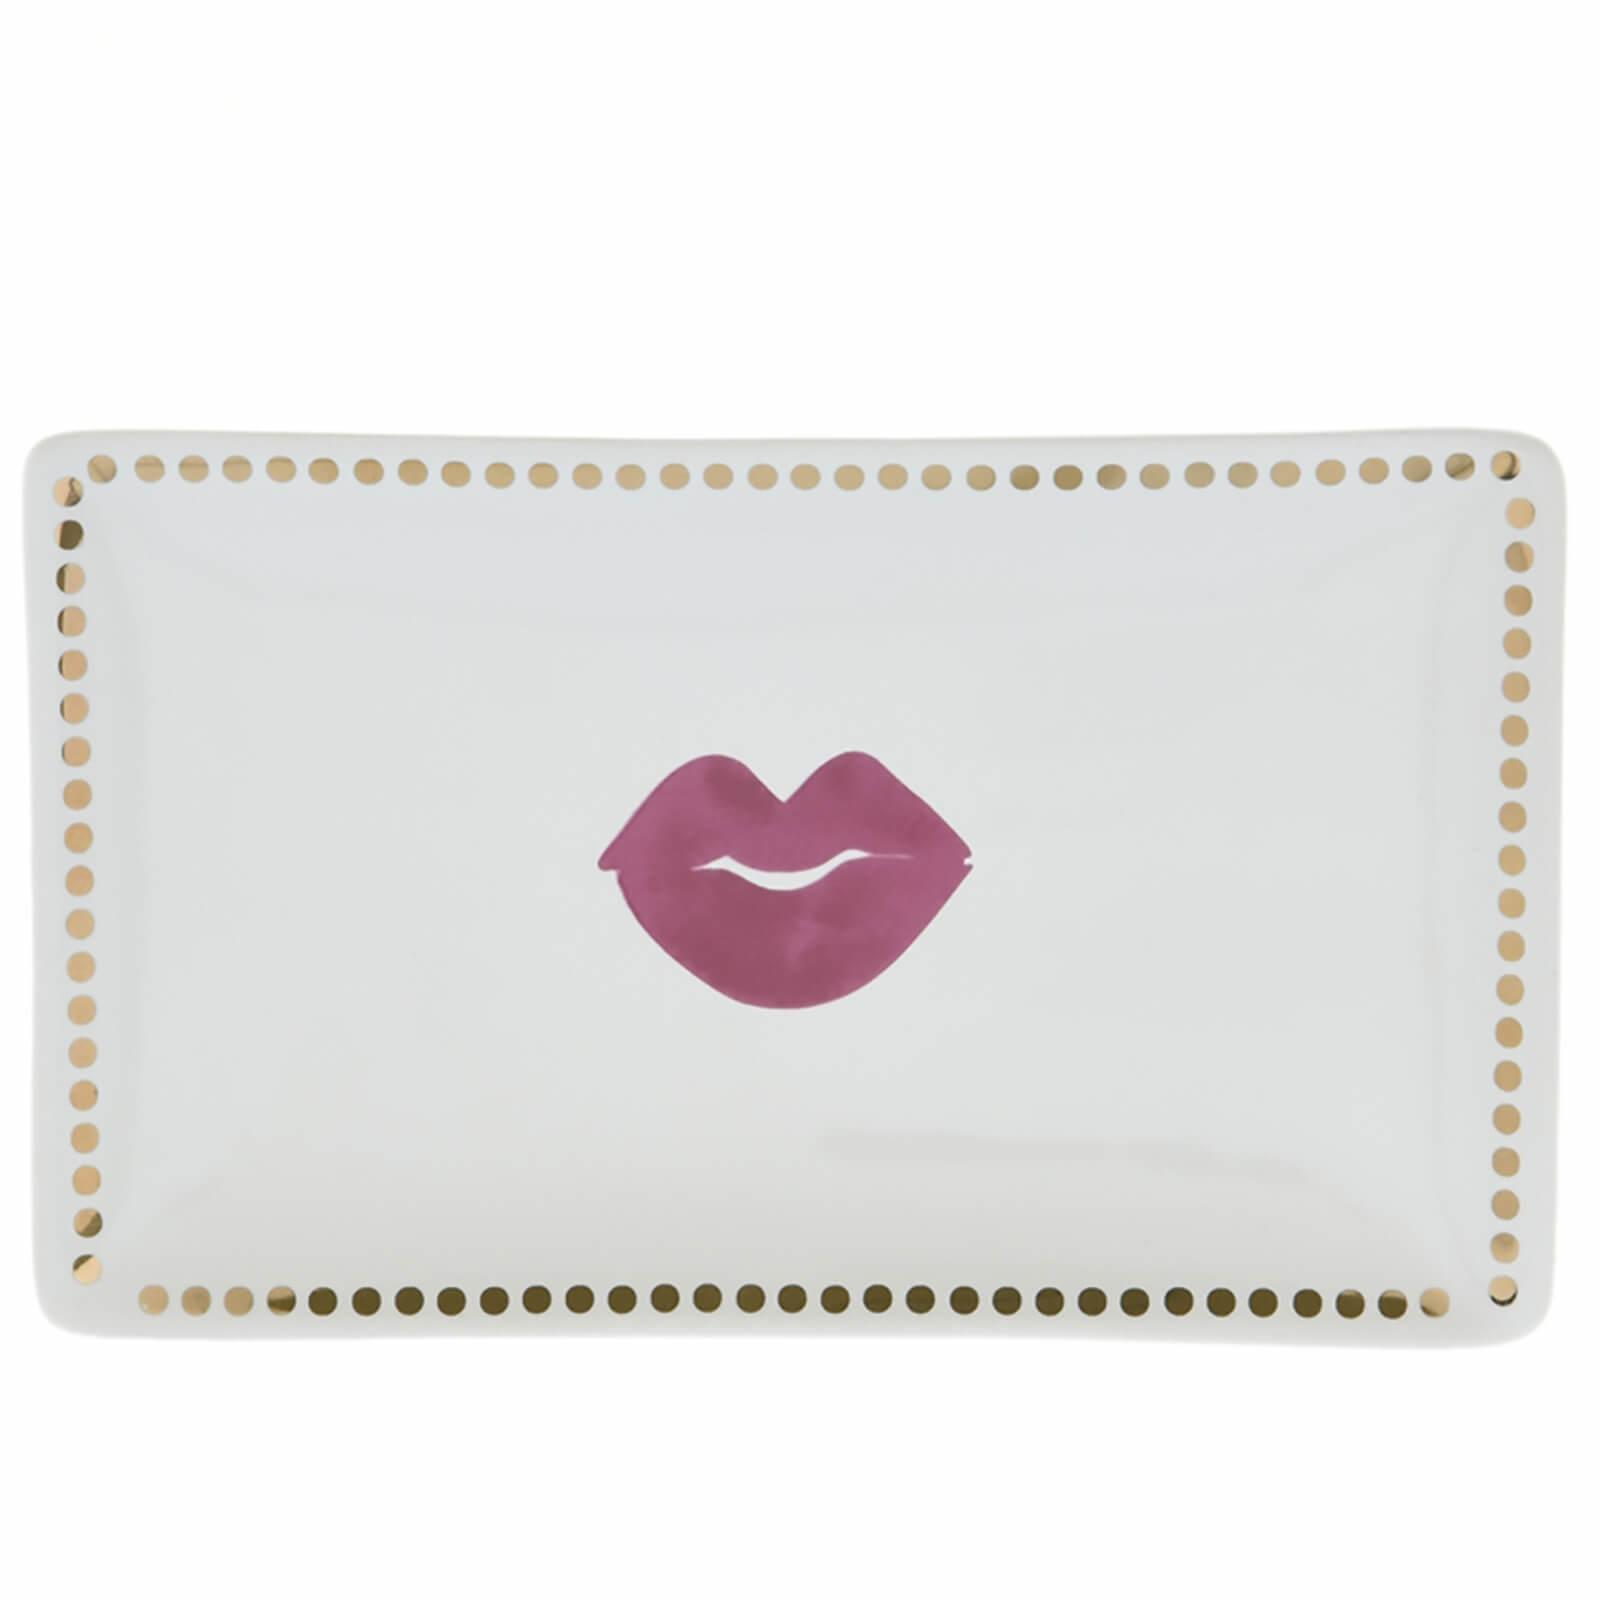 candlelight lips soap dish